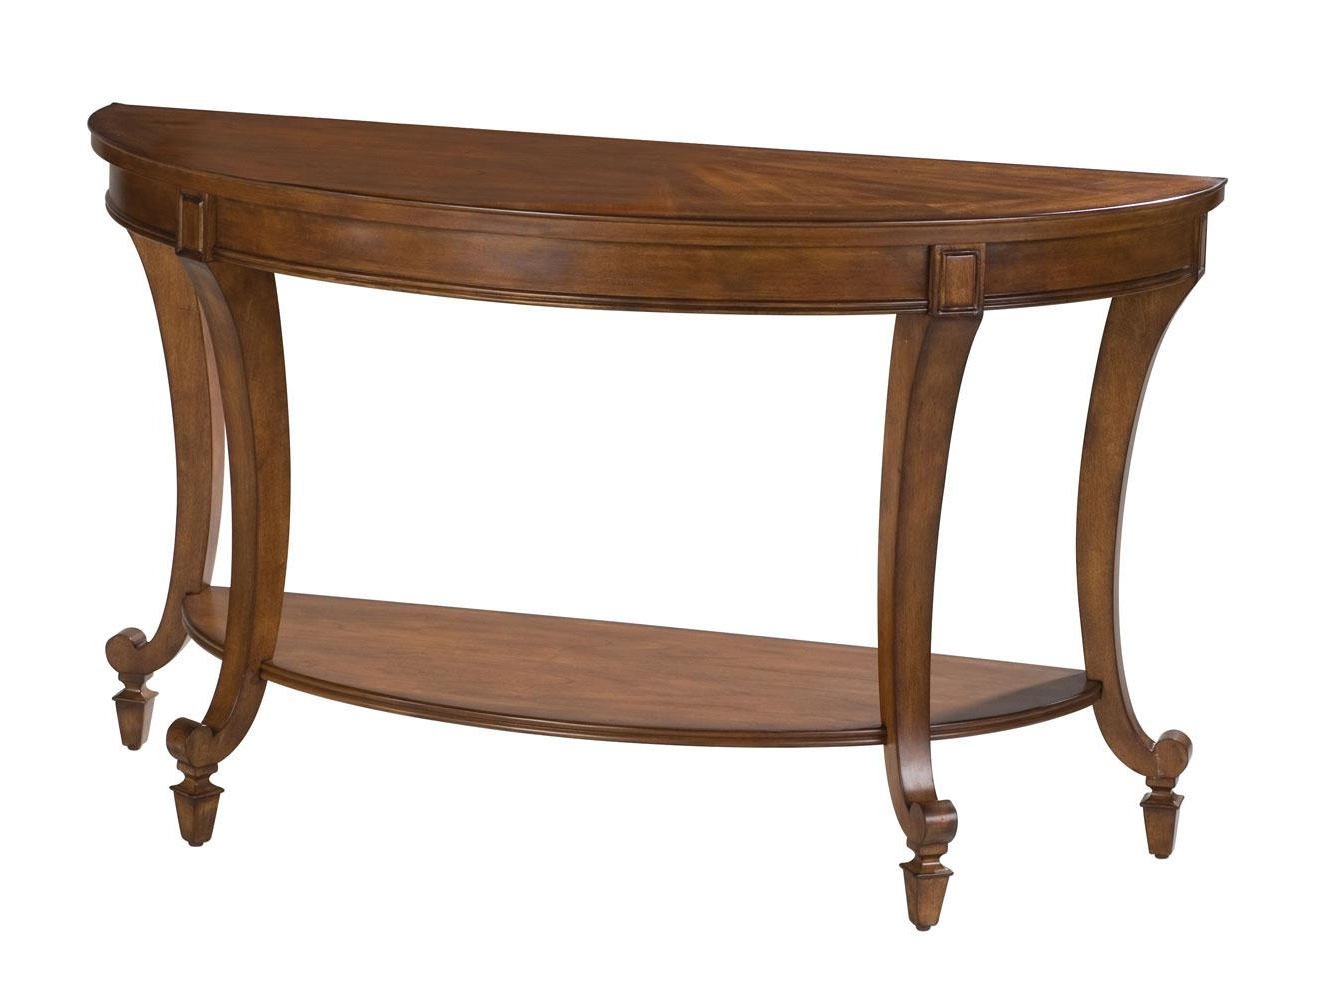 Clairemont Demilune Console Tables Within Recent Demilune Table Console Ideas — Oz Visuals Design (View 6 of 20)